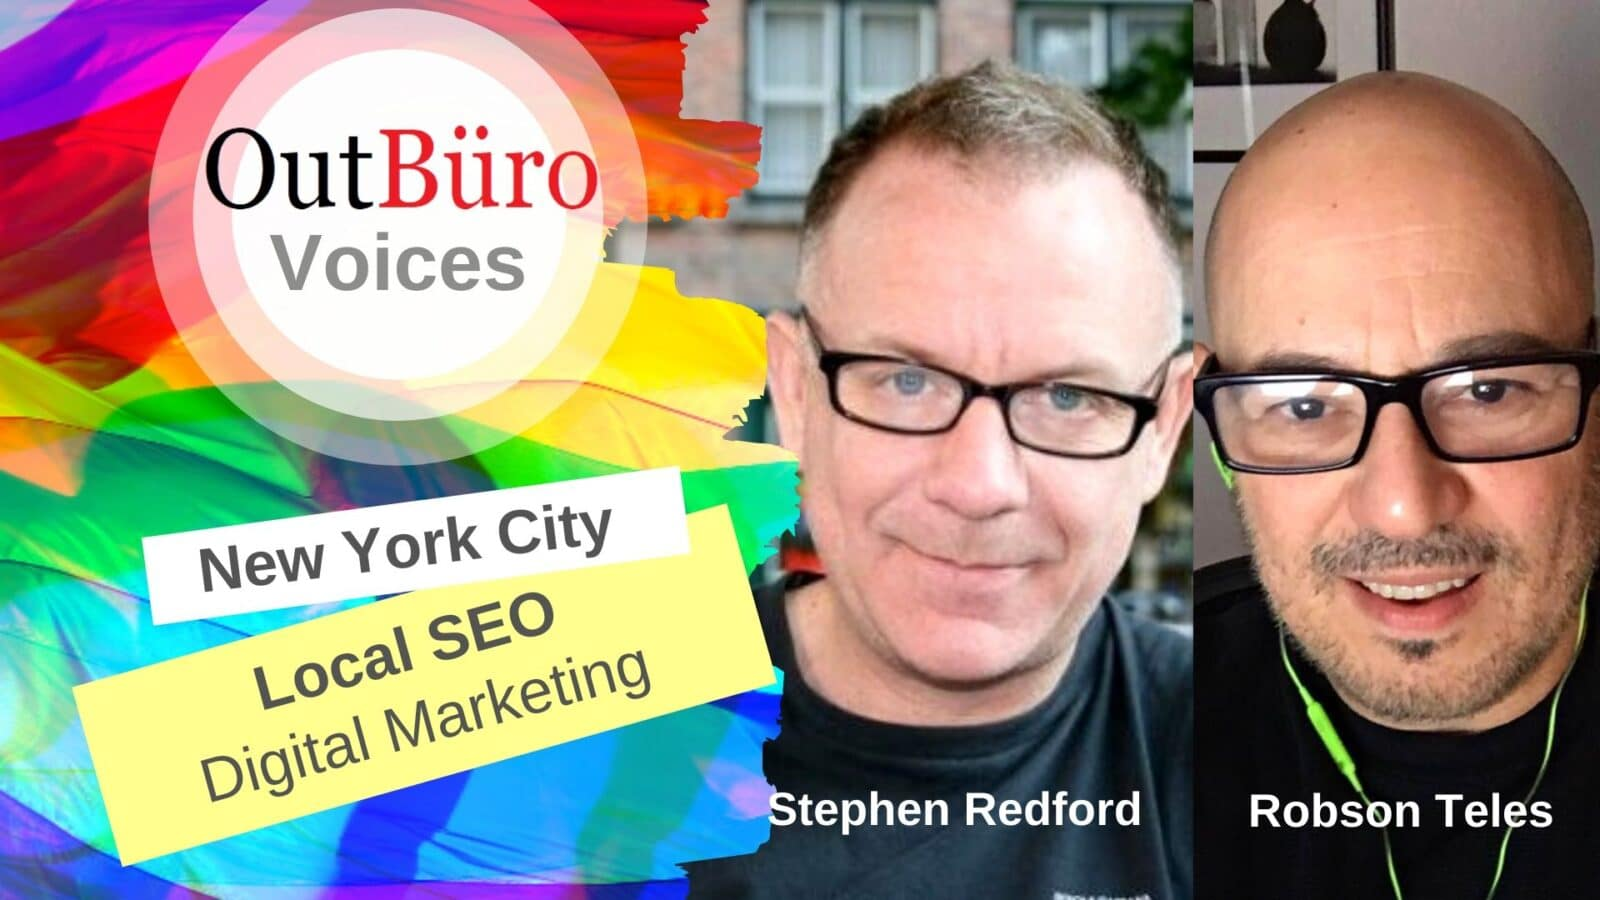 OutBuro Voices Interview Matthew French Awesomely Authentic Career Coach Educational College Prep Diversity Inclusion Consulting LGBT Professionals Gay Entrepreneurs LGBTQ Students